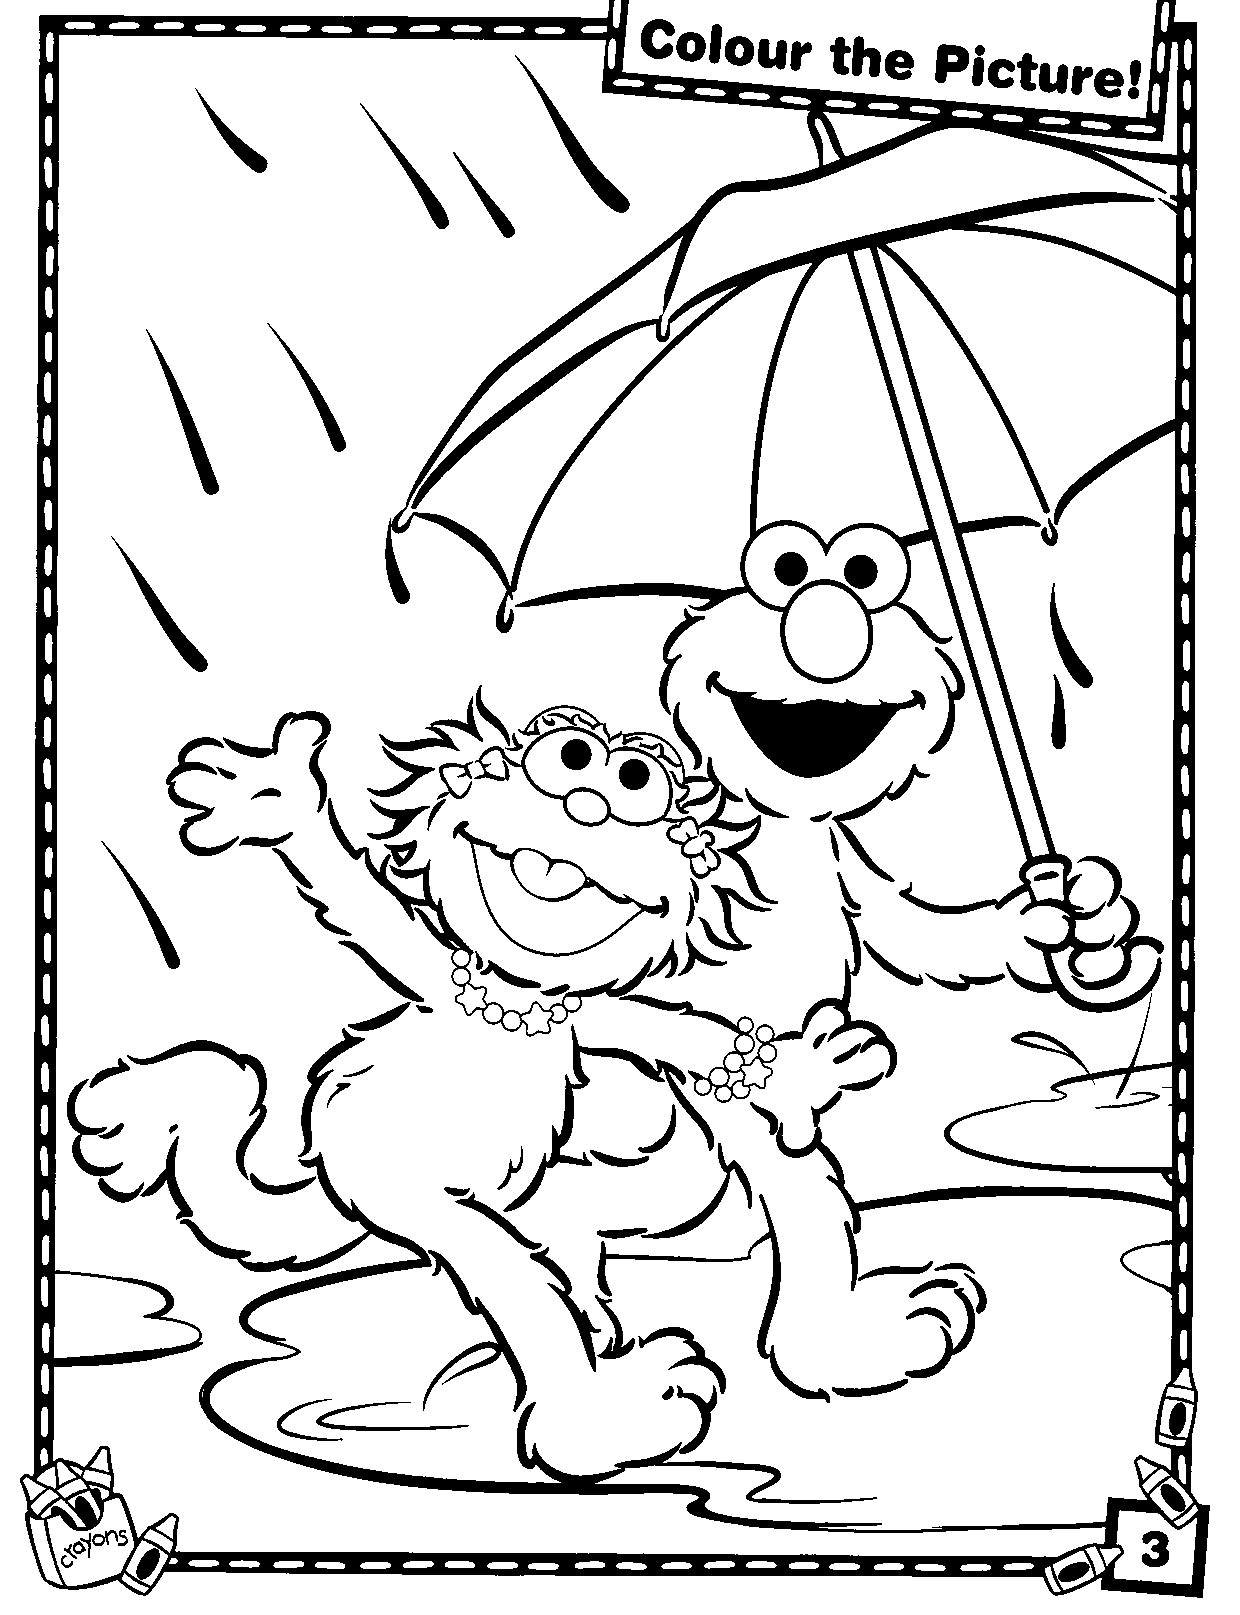 Coloring Pages Abby Coloring Pages free printable elmo coloring pages for kids of to print